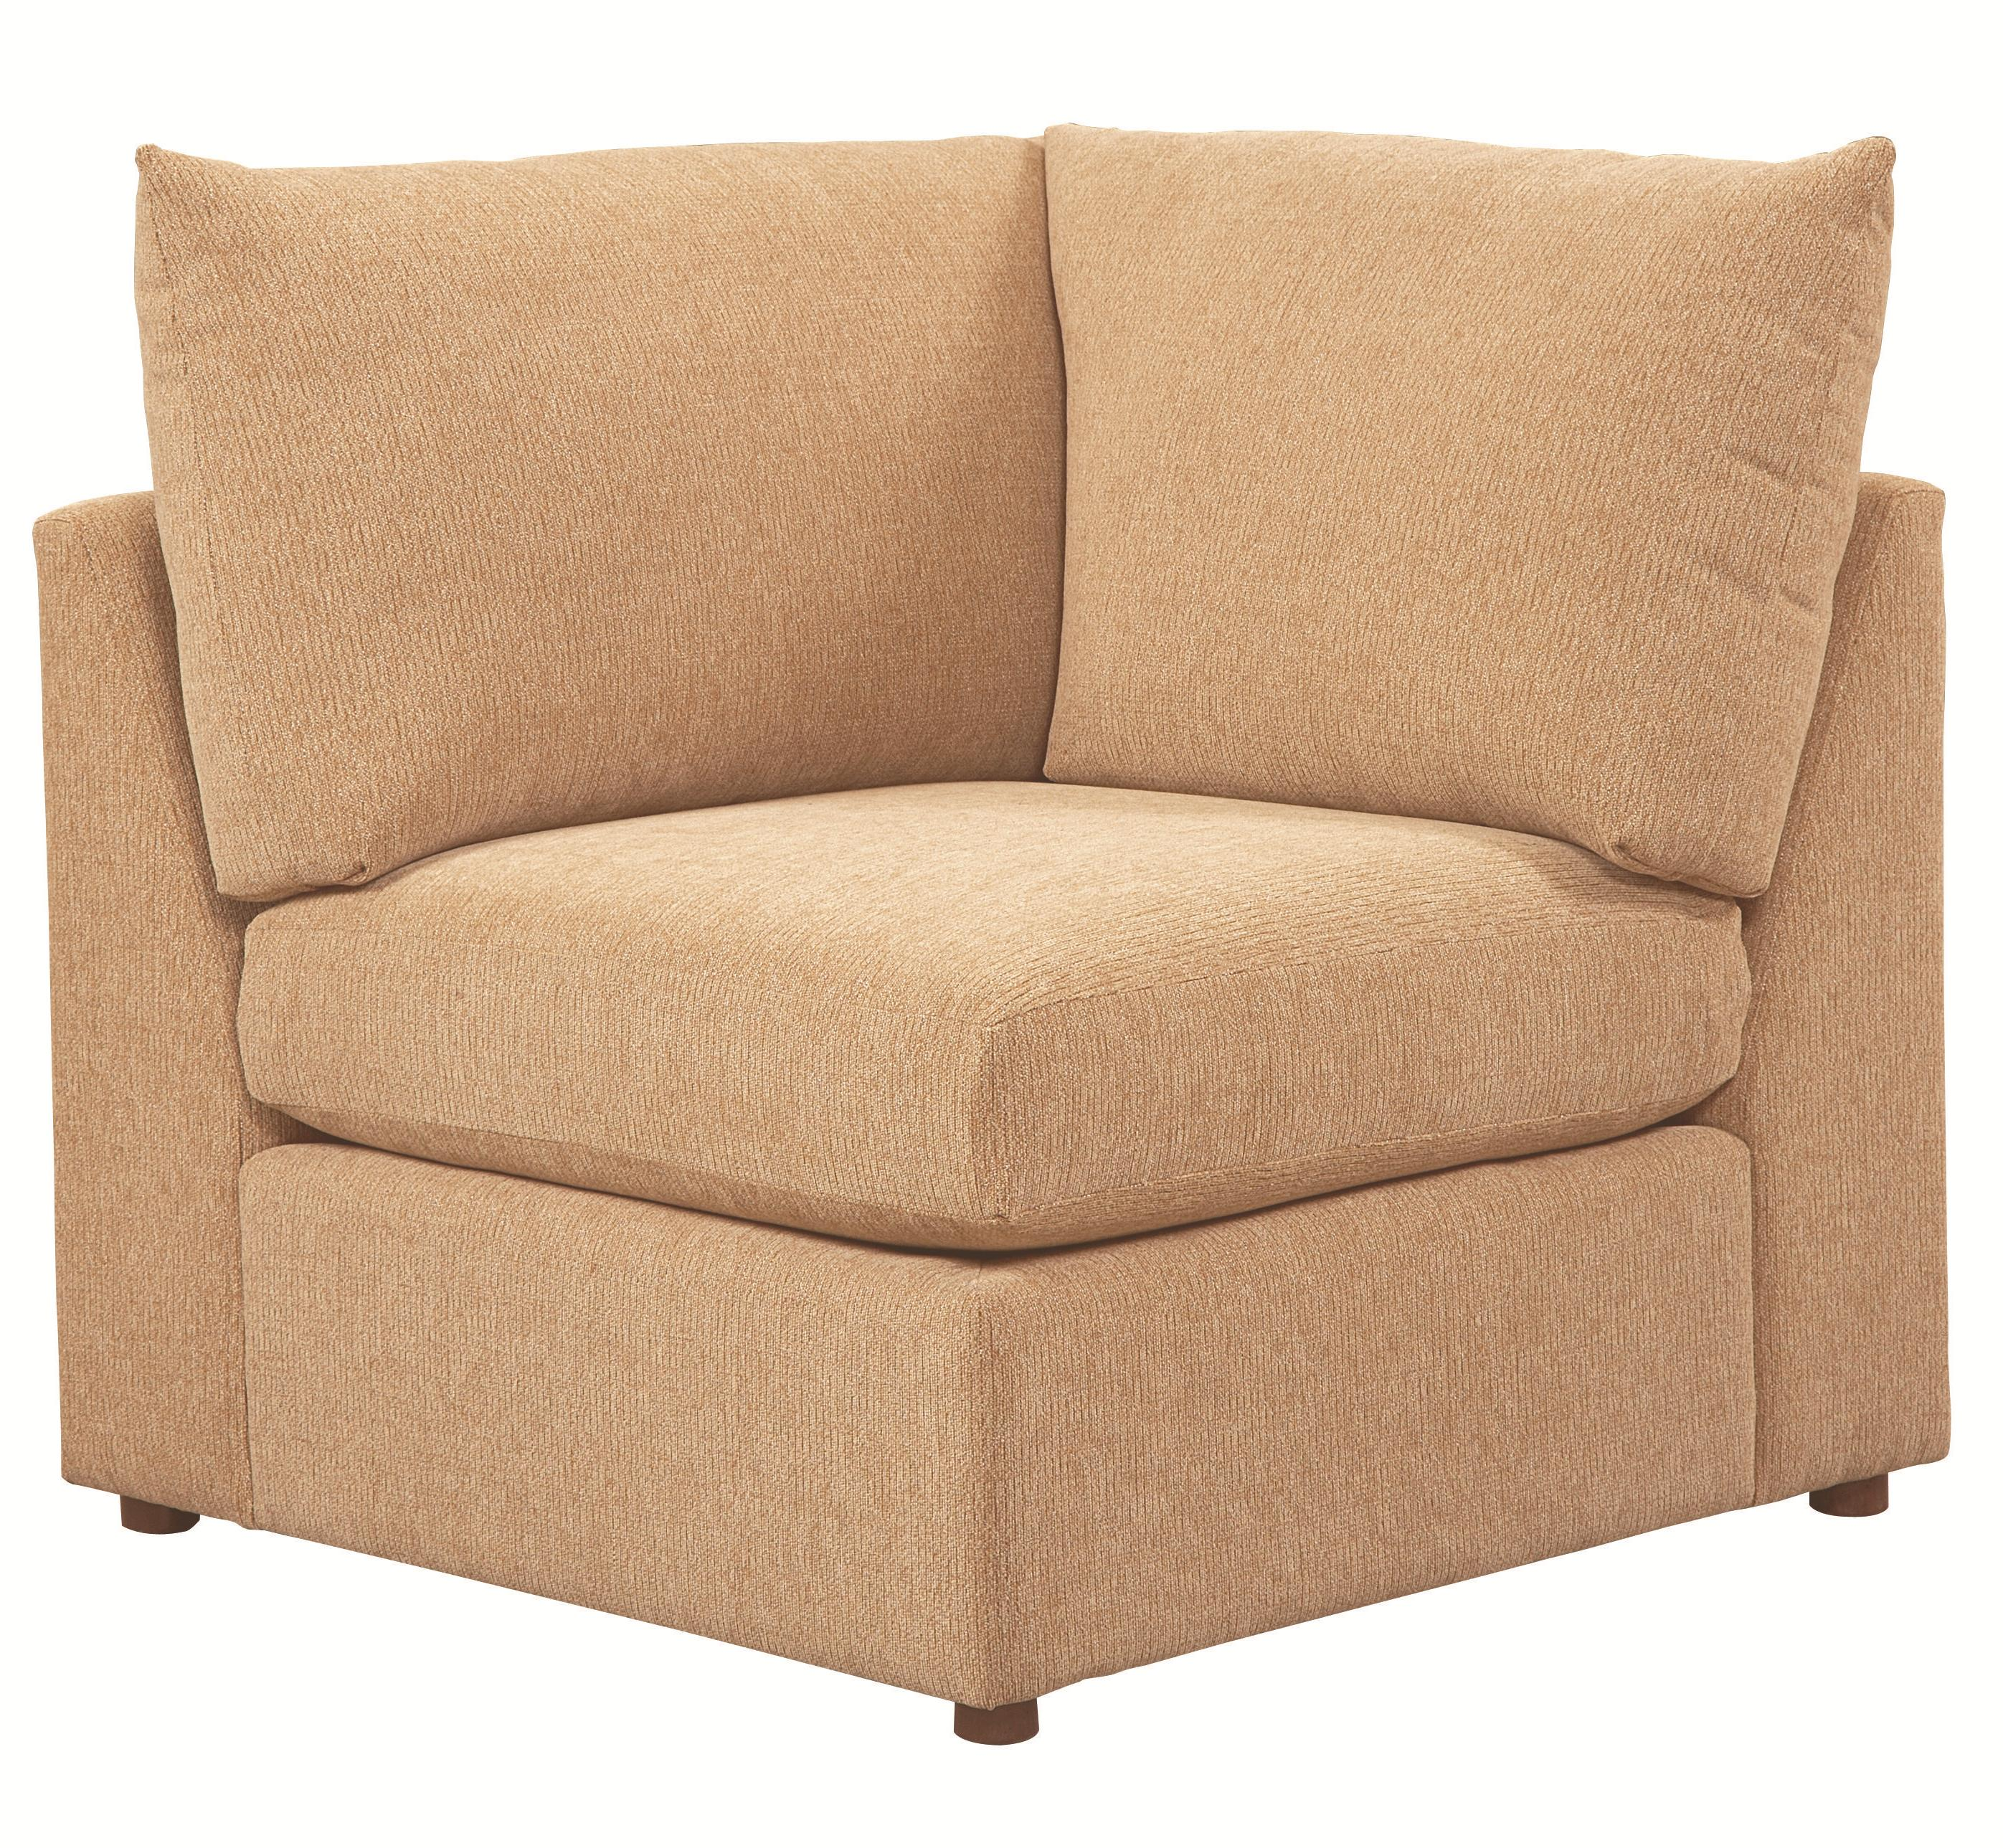 Bassett Beckham 3974 Upholstered Chair - Item Number: 3974-30FC